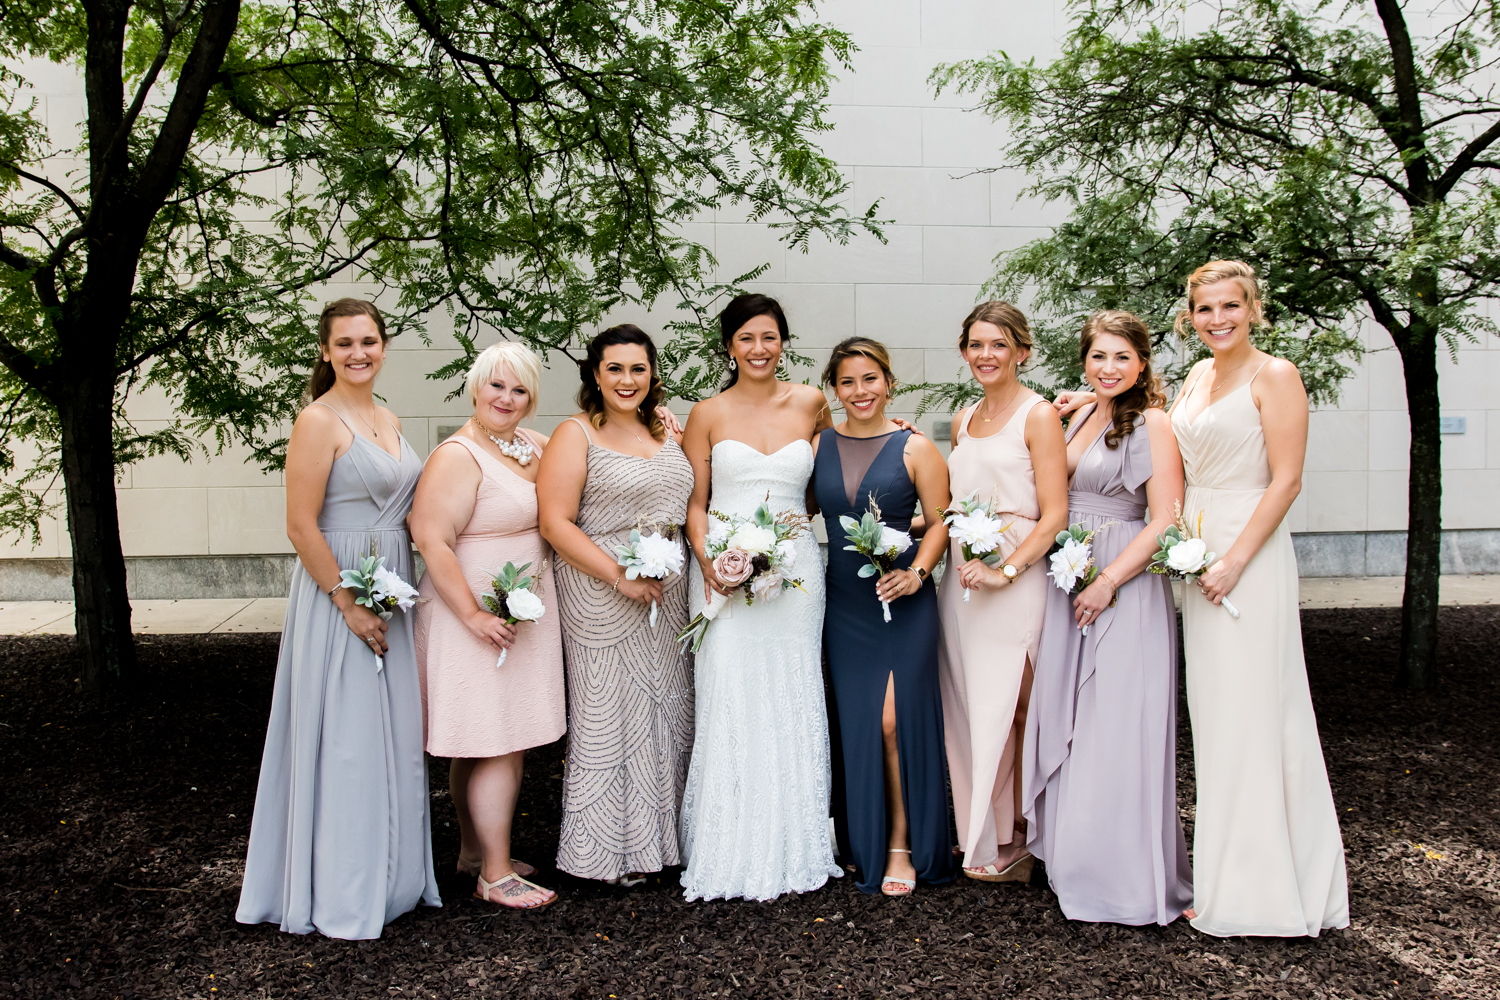 Indiana State Museaum Wedding Photography 12520.JPG